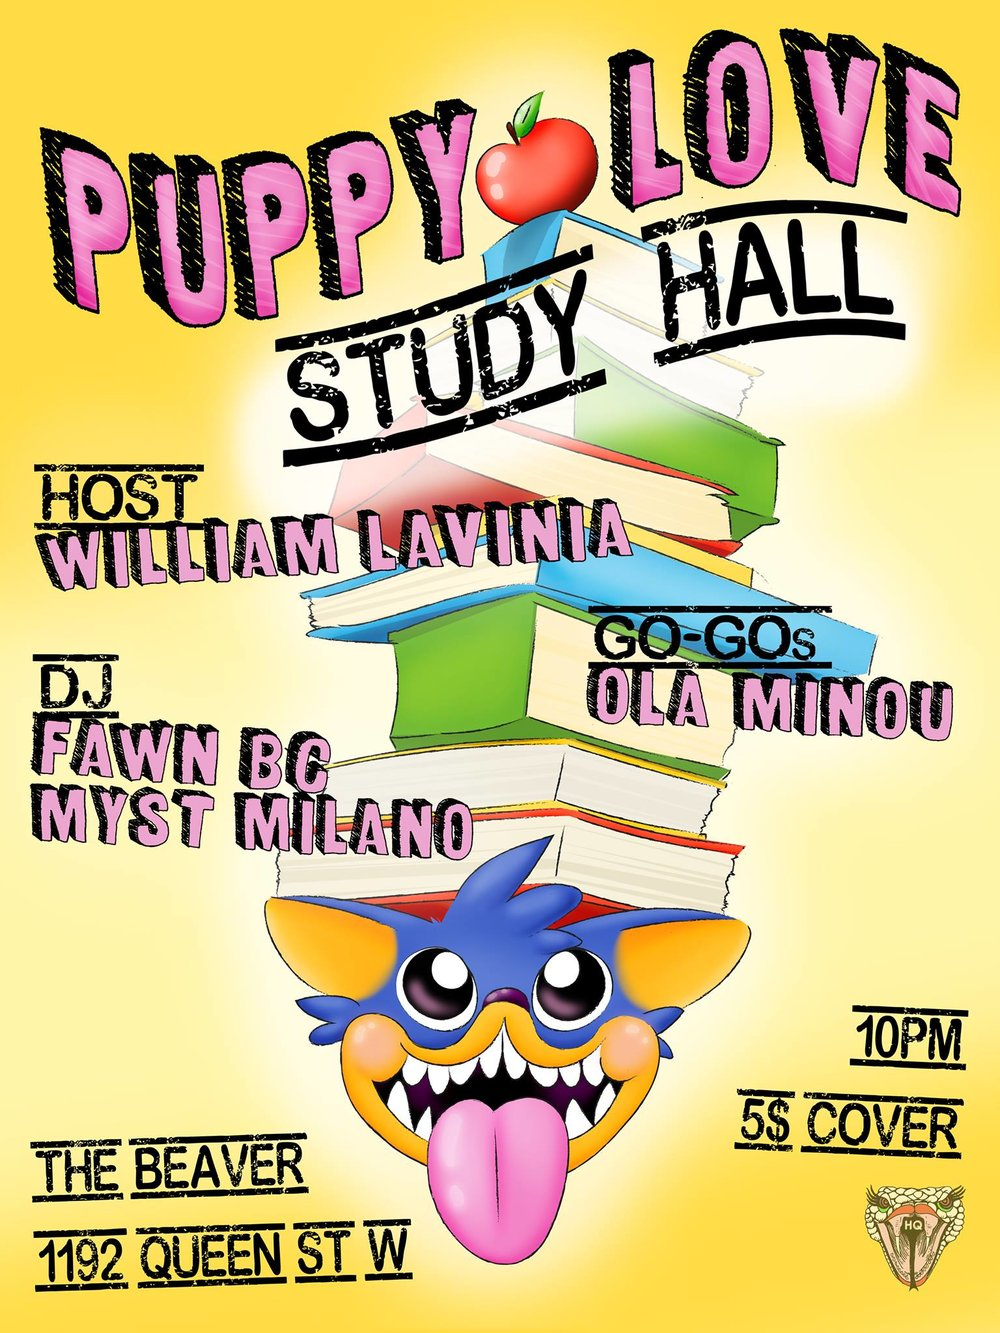 puppy-love-study-hall